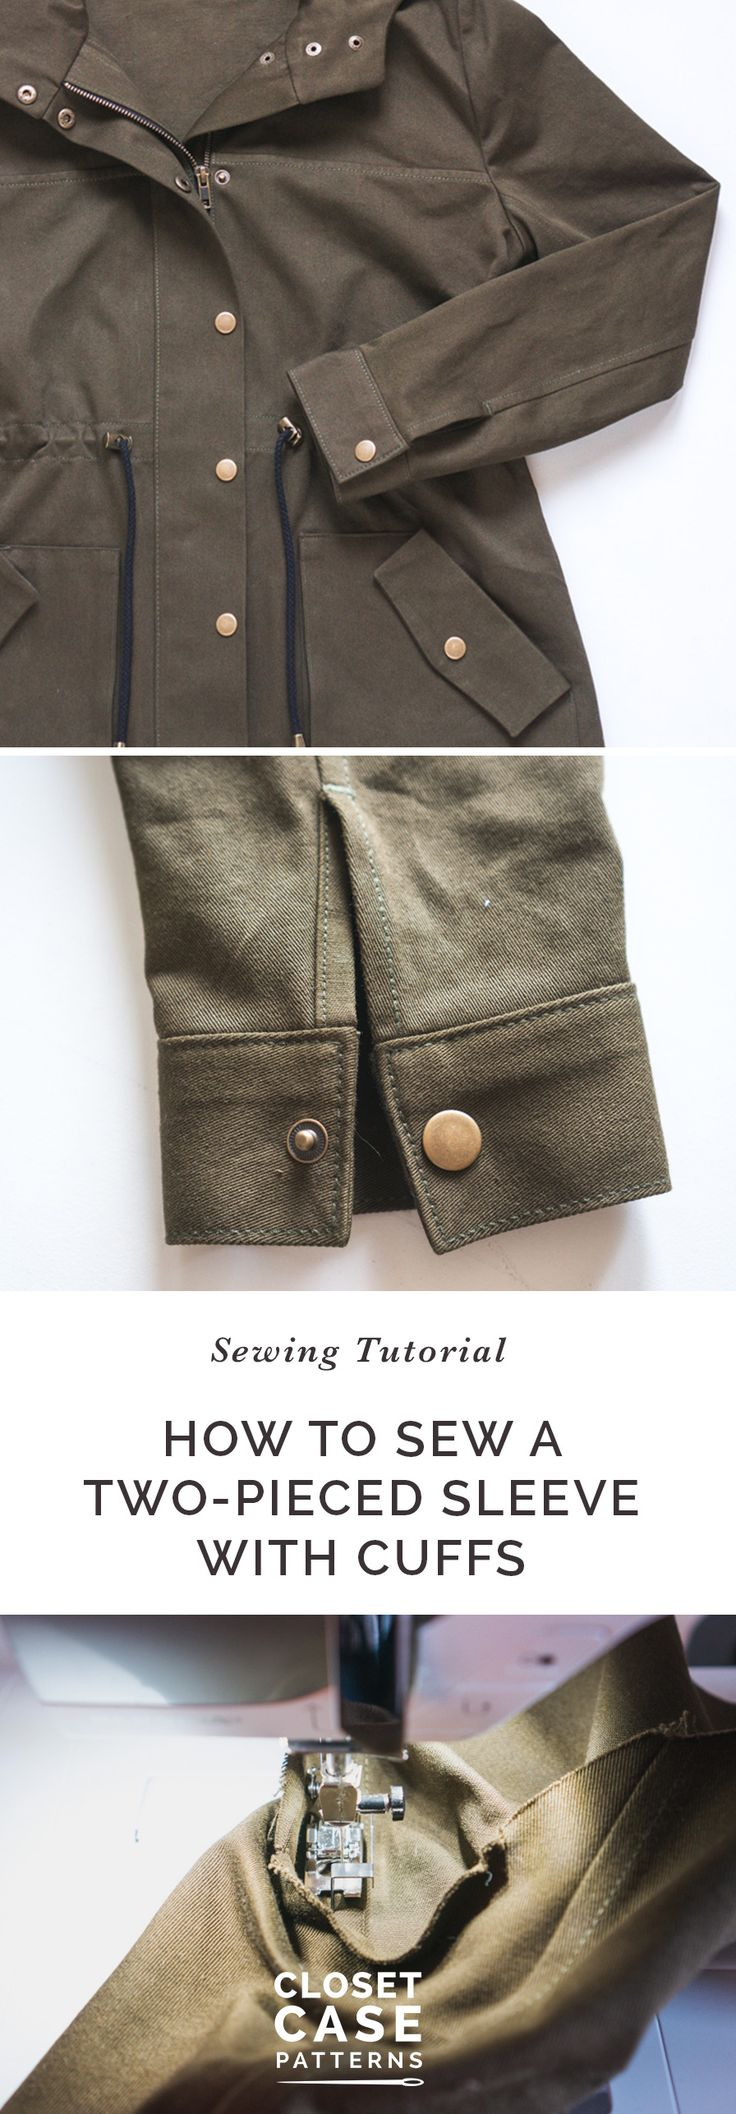 Learn to sew and set in a two piece sleeve with cuffs with our sewing tutorial! // Kelly Anorak Sewalong // Closet Case Patterns https://closetcasepatterns.com/sewalong/setting-sleeves-cuffs-unlined-version-kelly-anorak-sewalong/